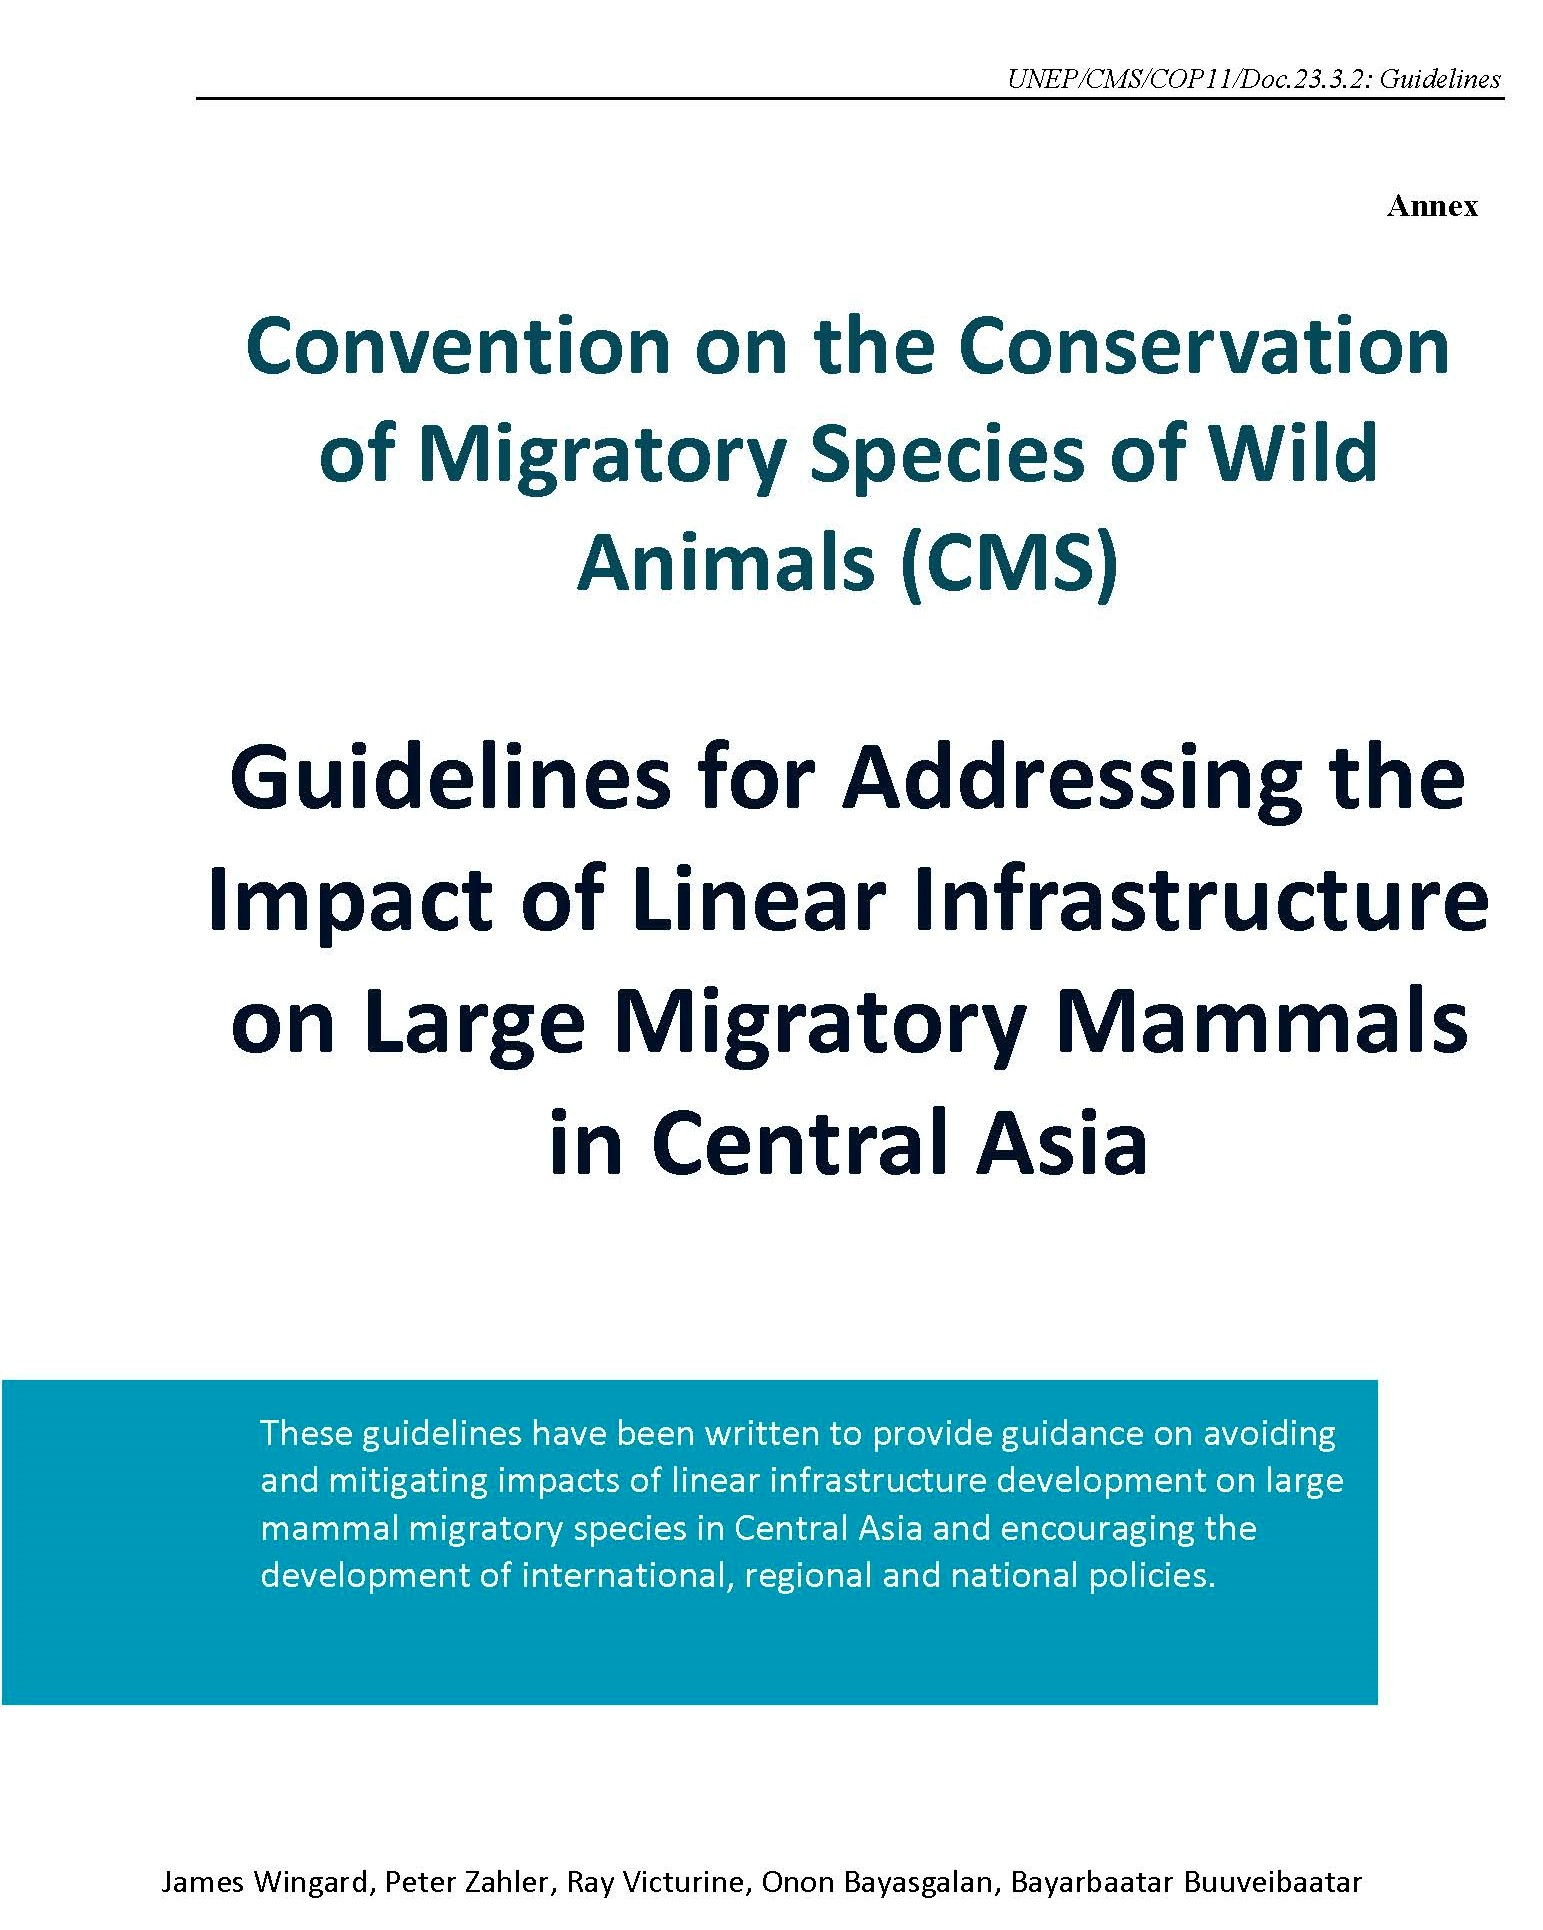 Guidelines on Mitigating the Impact of Linear Infrastructure and related Disturbance on Mammals in Central Asia. Convention on migratory species